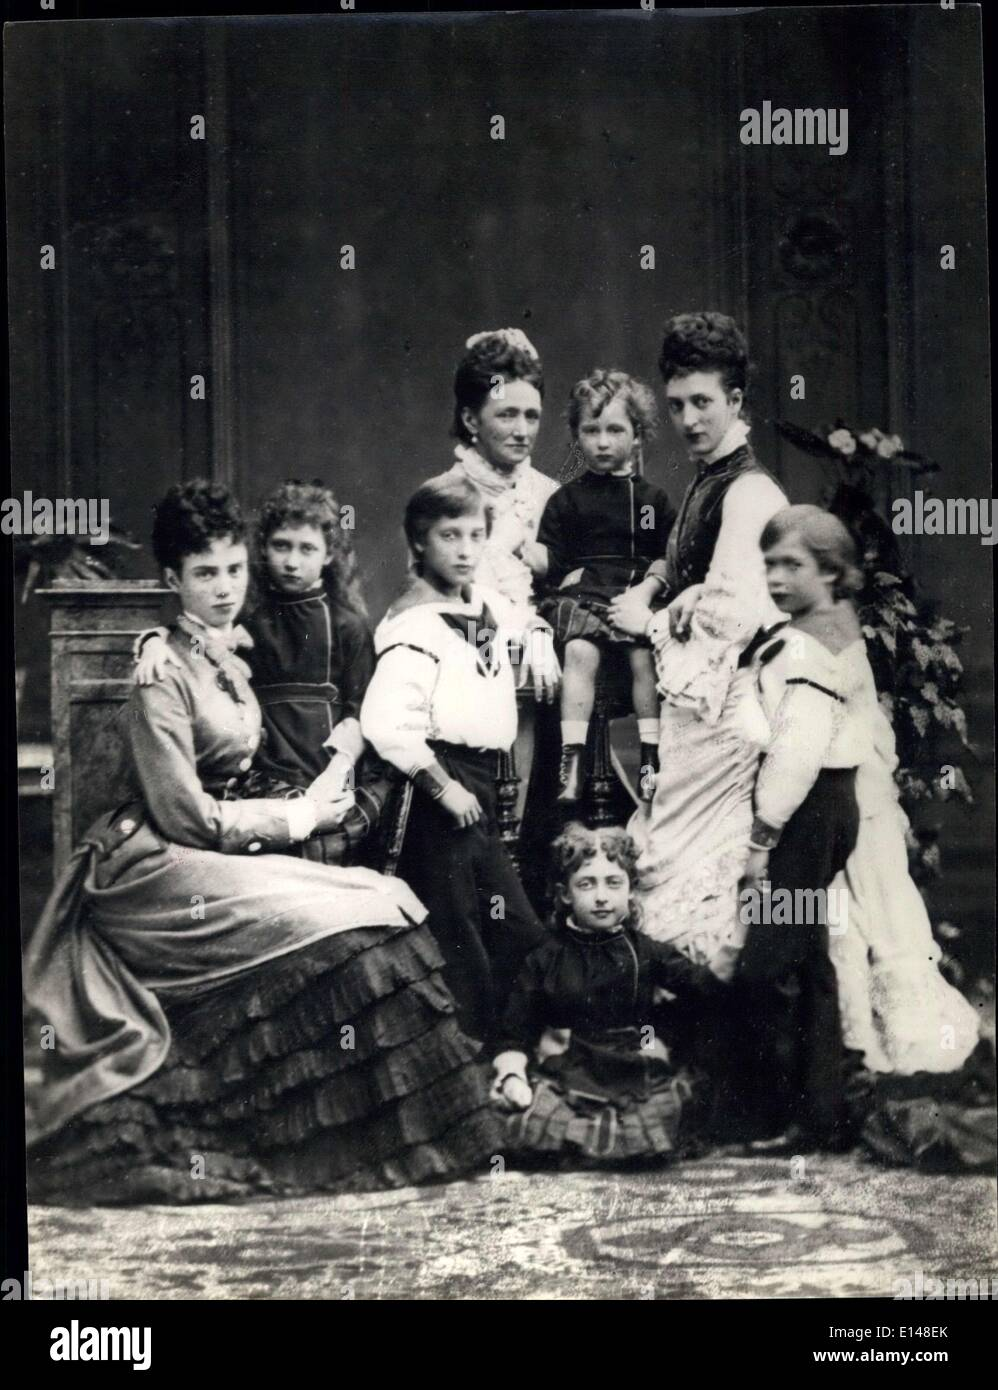 Apr. 17, 2012 - In Victoria's Reign. The Princess of Wales with her mother, sister, and children. Alexandra wife of Edward (later King Edward VII) 1901, daughter of King Christian of Denmark. Alescandra, daughter of Christian IX of Denmark Mother Louise (daughter of the Cond-grave Hesse-Cassel) Alescandra had six children (3 boys and 3 girls). Sister Dagmar (married Alexander III of Russia) - Stock Image